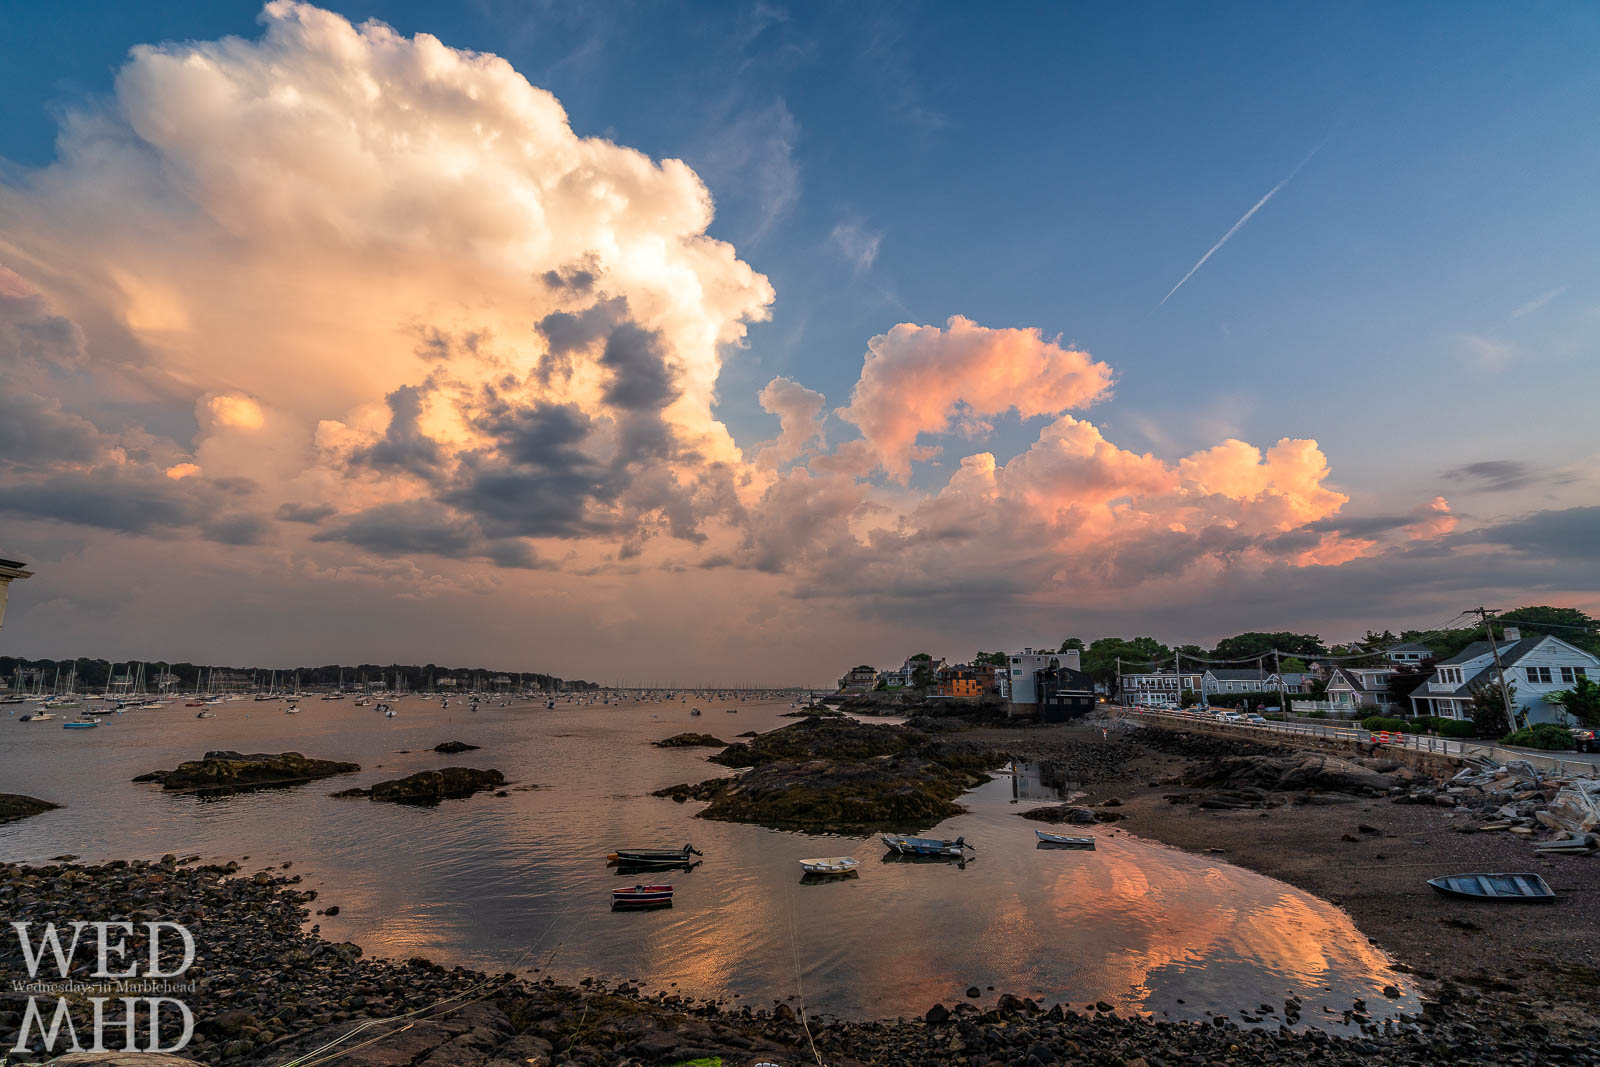 A magical light display is reflected in the still waters of Fort Beach on July 3rd in Marblehead